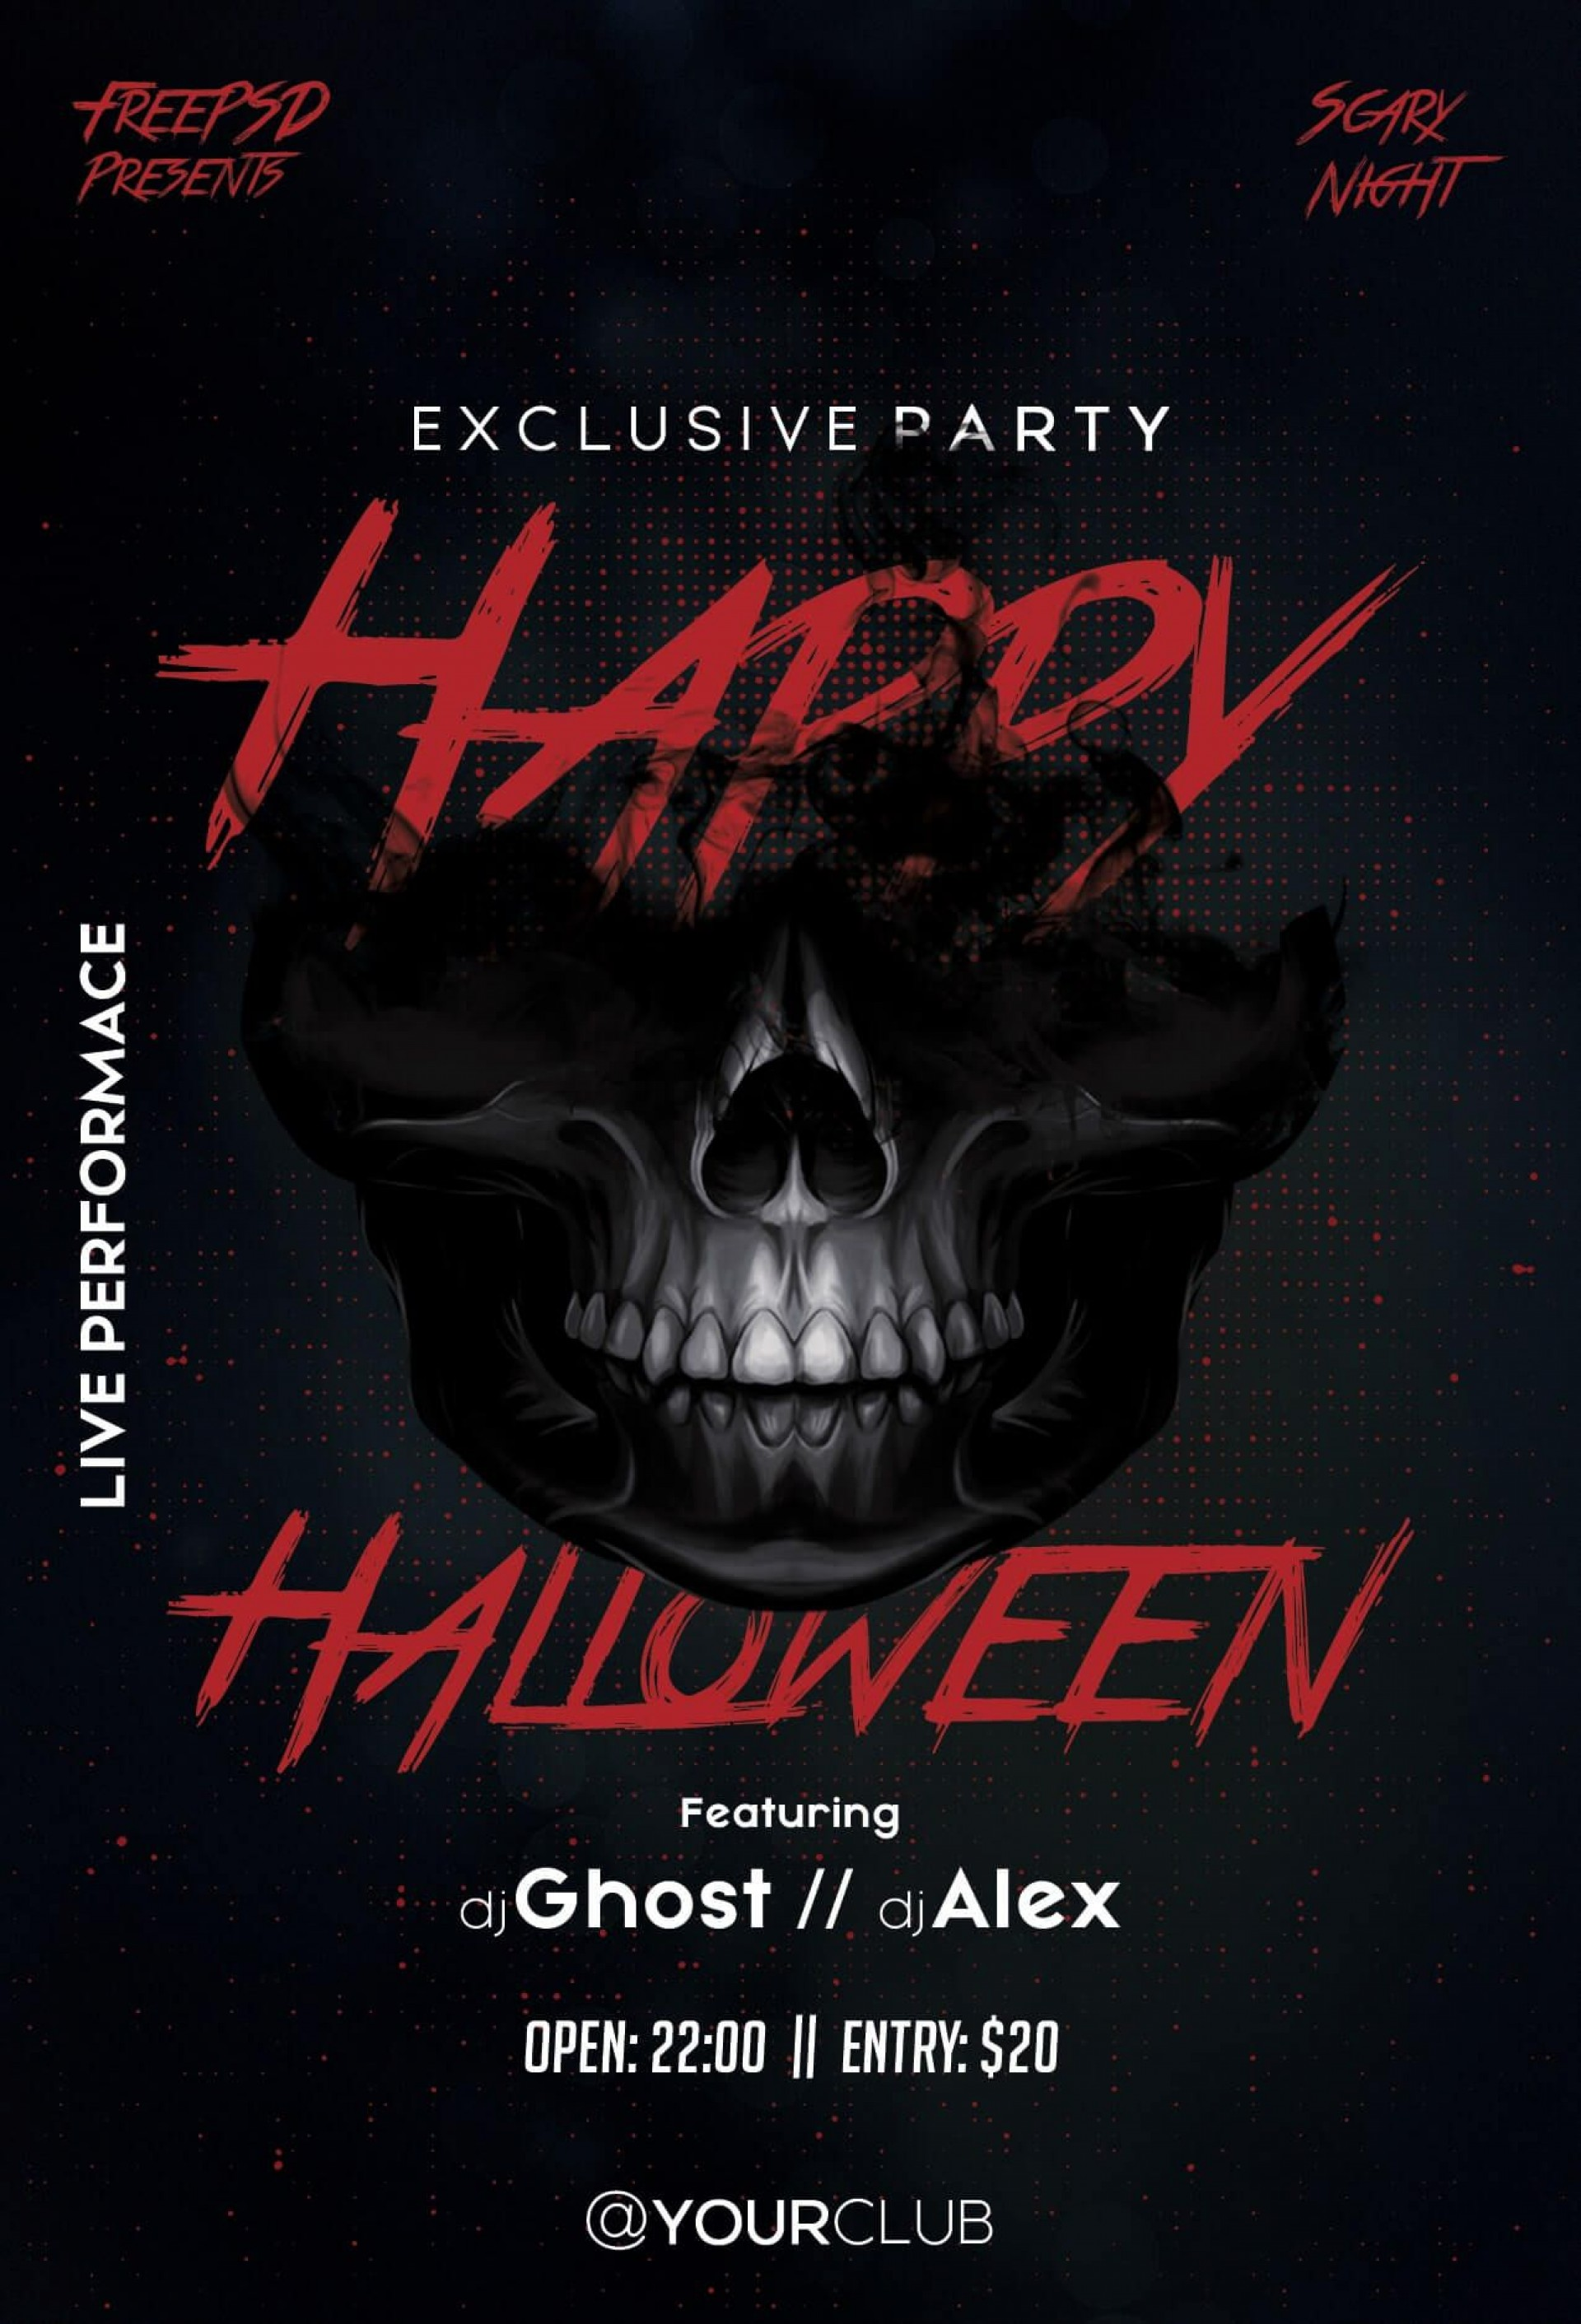 007 Remarkable Free Halloween Party Flyer Template Inspiration  Templates1920